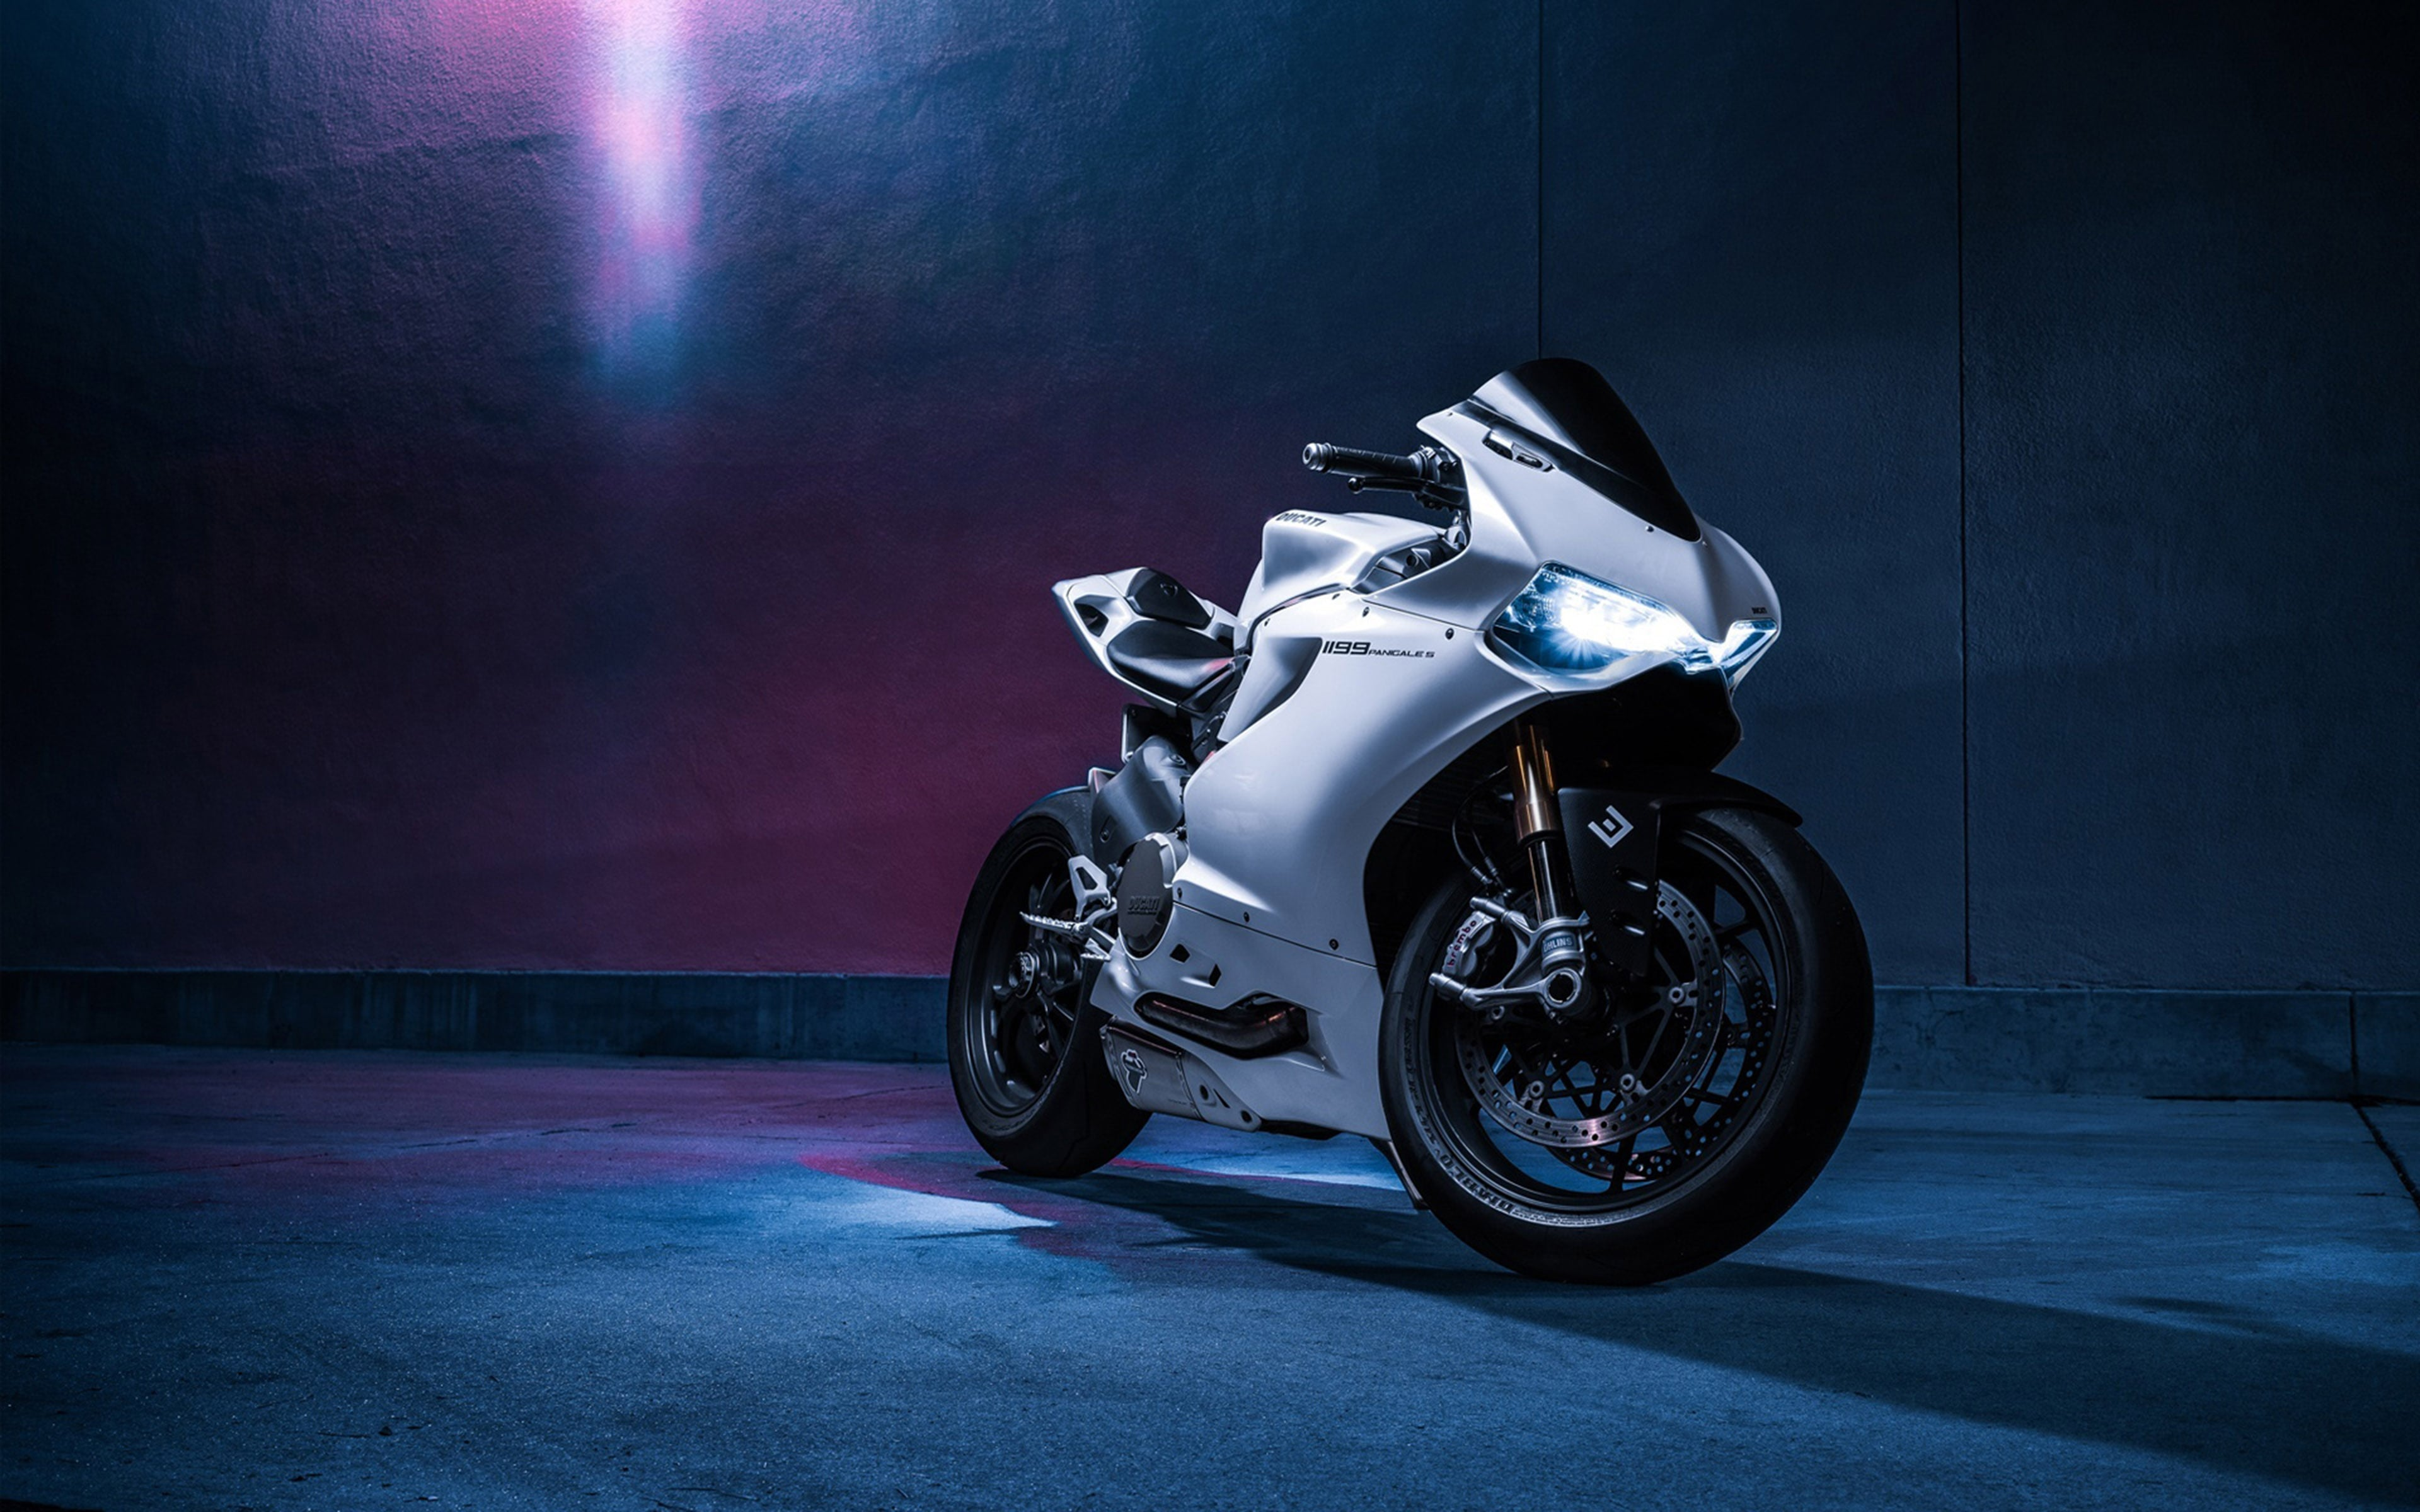 22 Ducati 1199 Panigale wallpapers HD 3840x2400